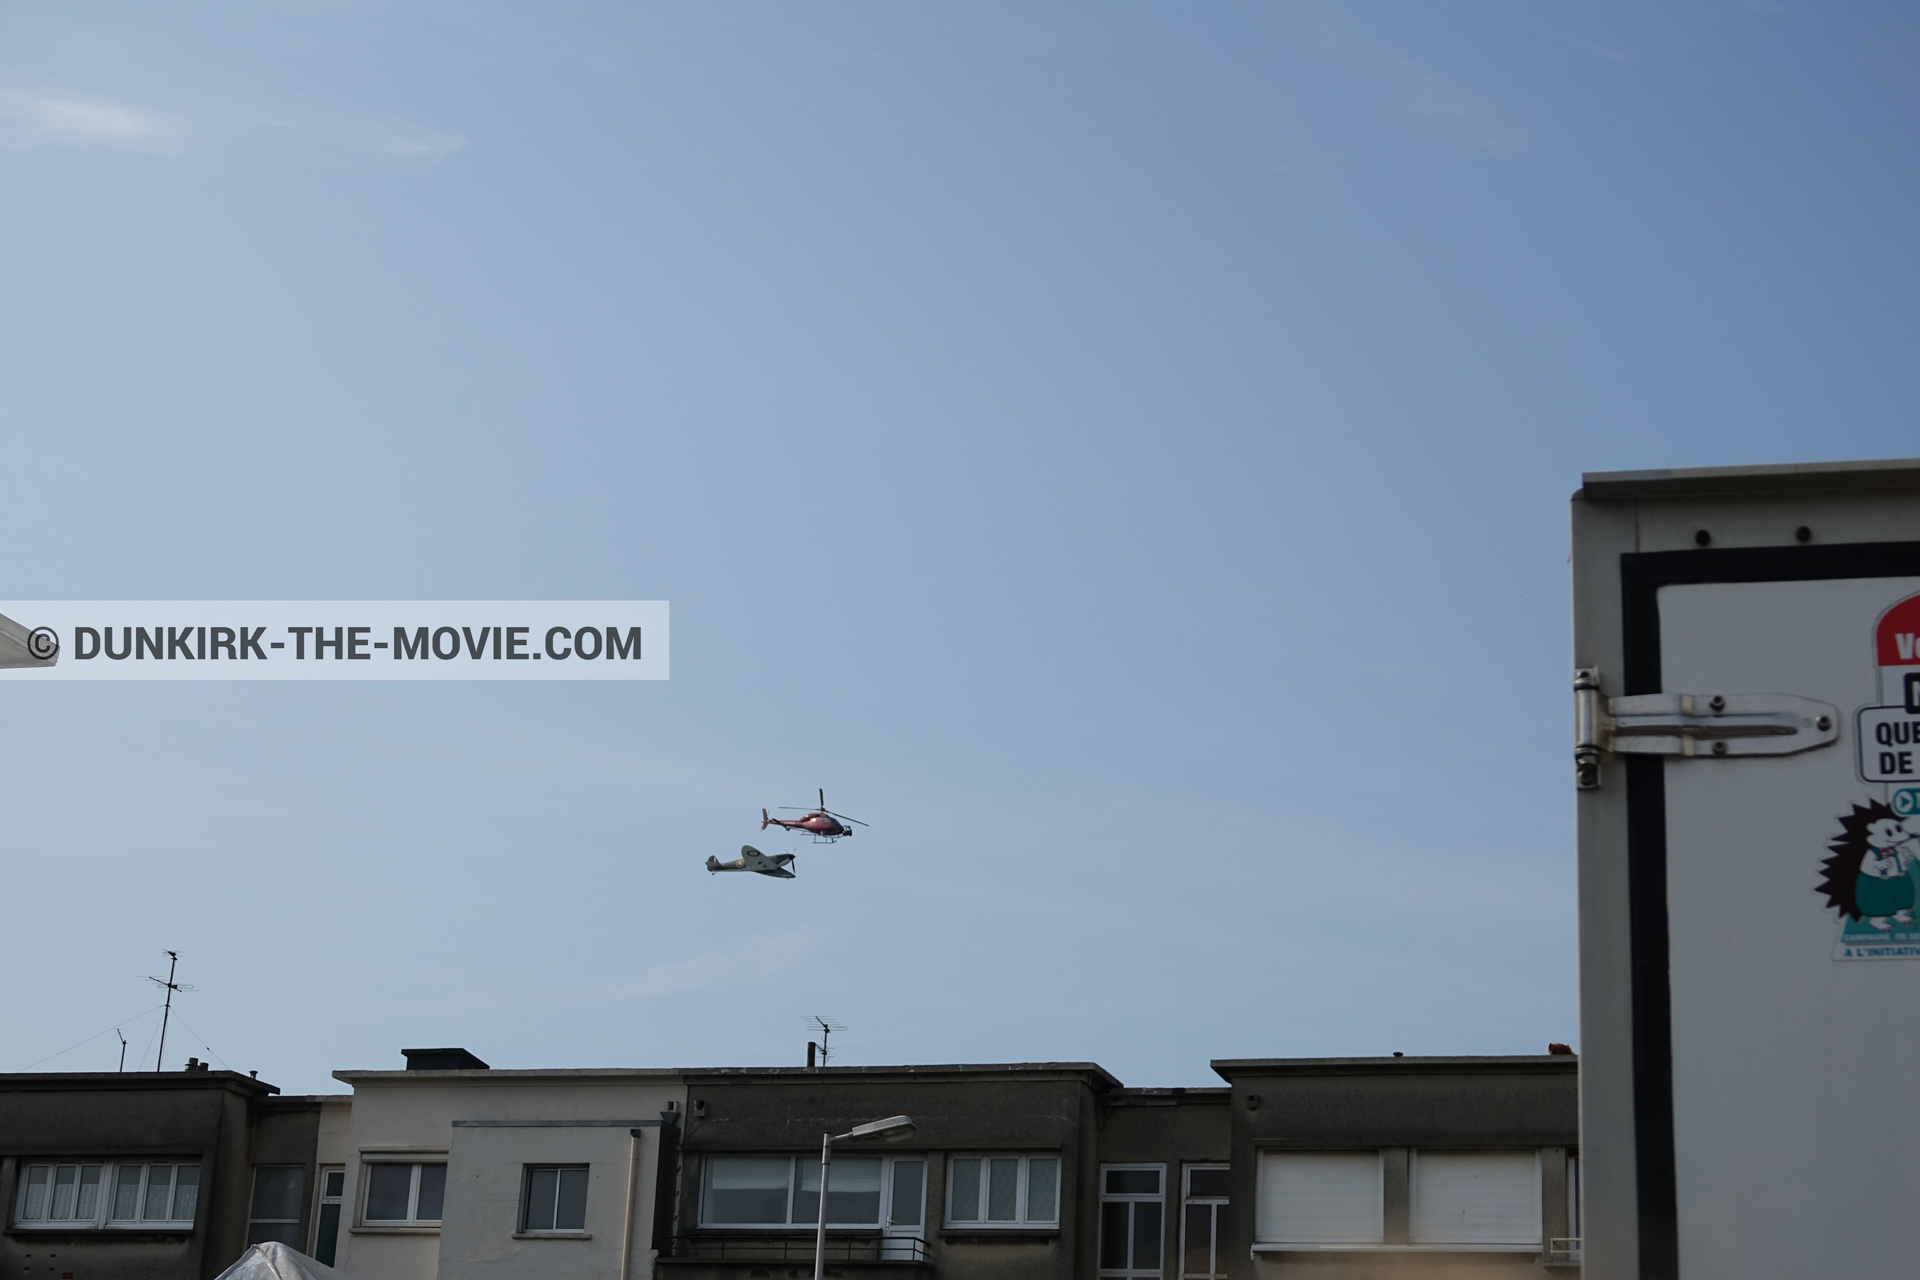 Picture with plane, helicopter camera, Malo les Bains, blue sky,  from behind the scene of the Dunkirk movie by Nolan